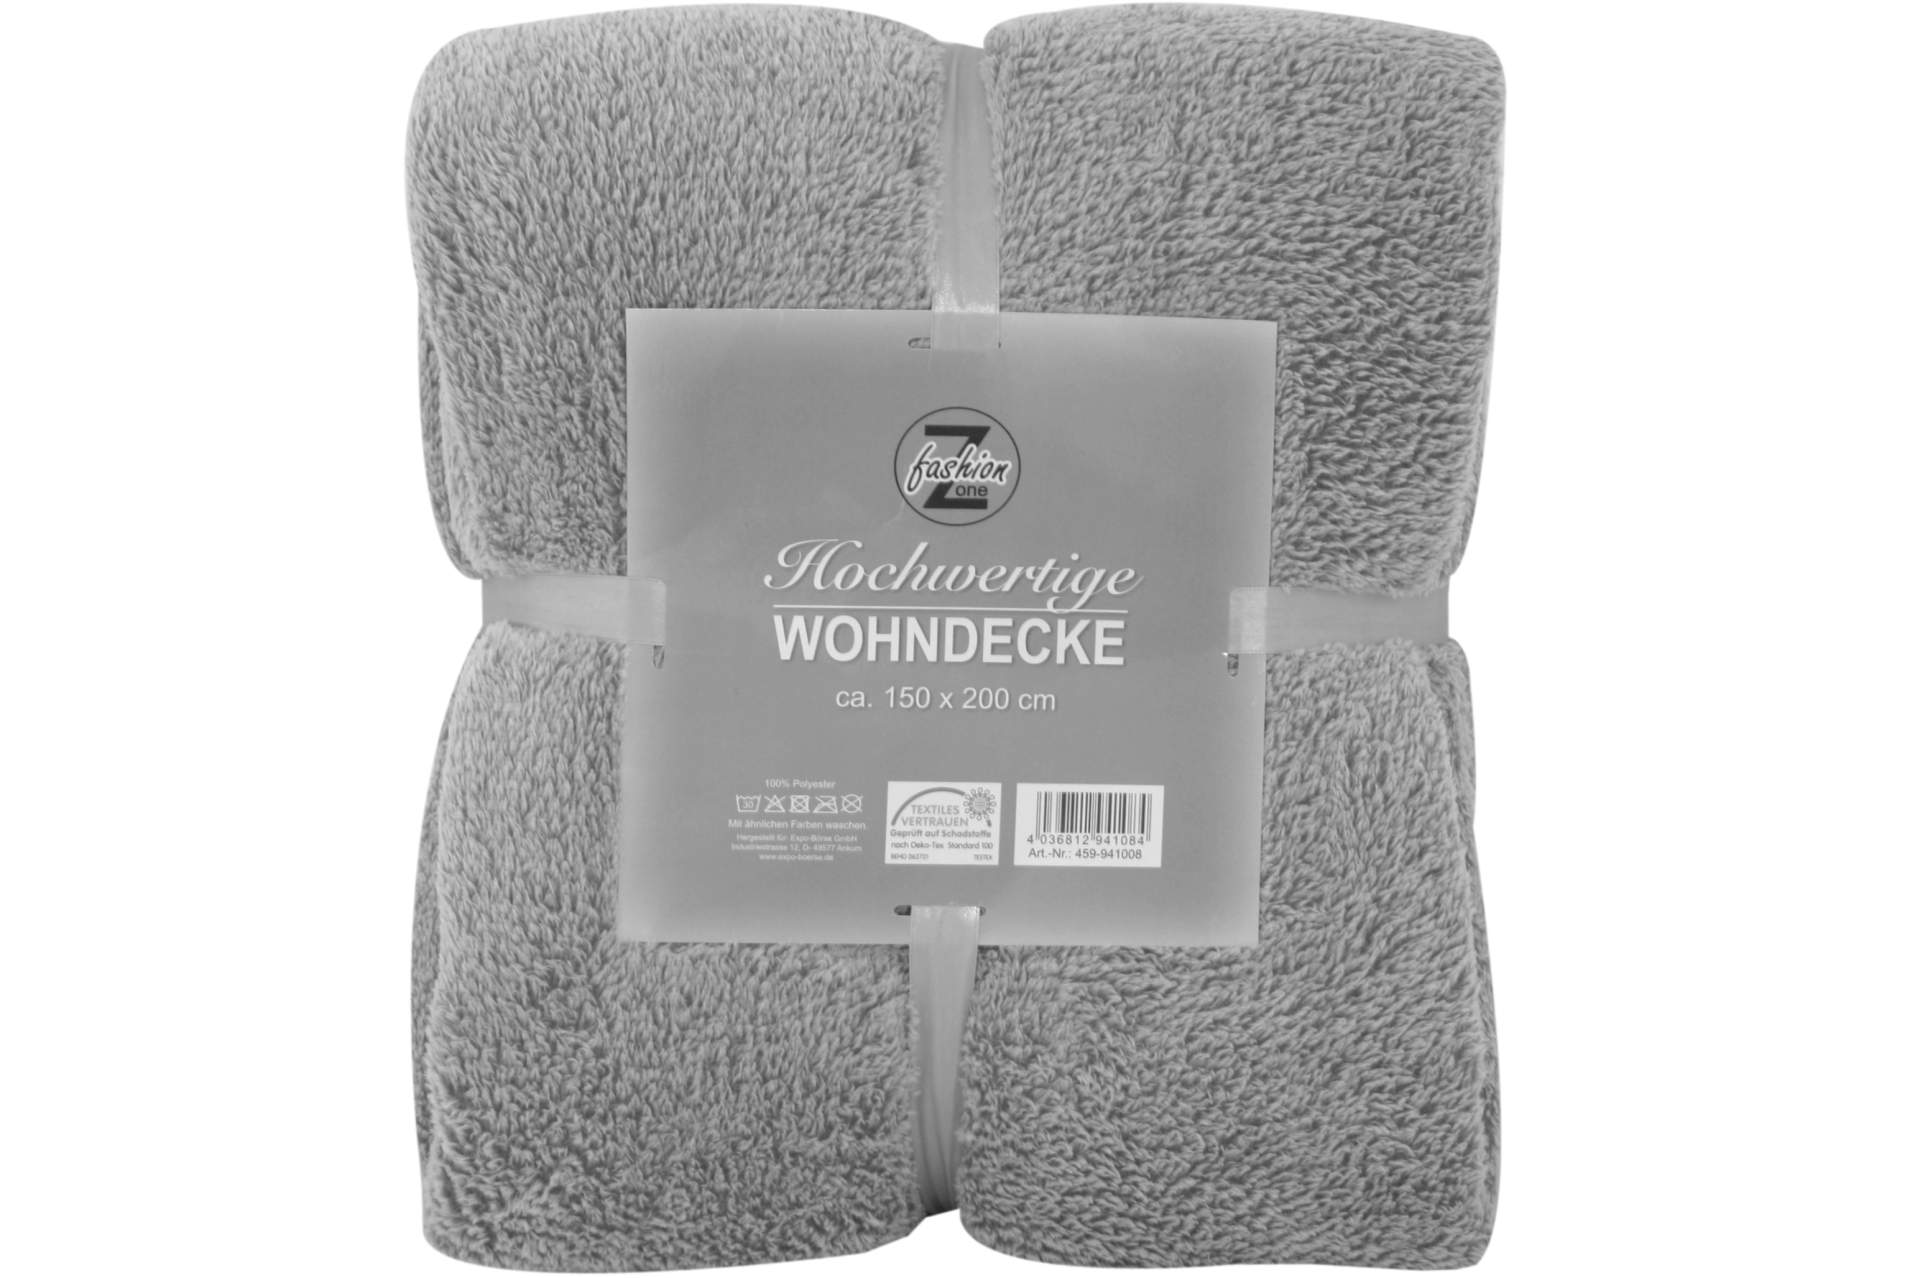 flanell wohndecke grau 200 x 150 cm kuscheldecke sofadecke flanelldecke decke ebay. Black Bedroom Furniture Sets. Home Design Ideas